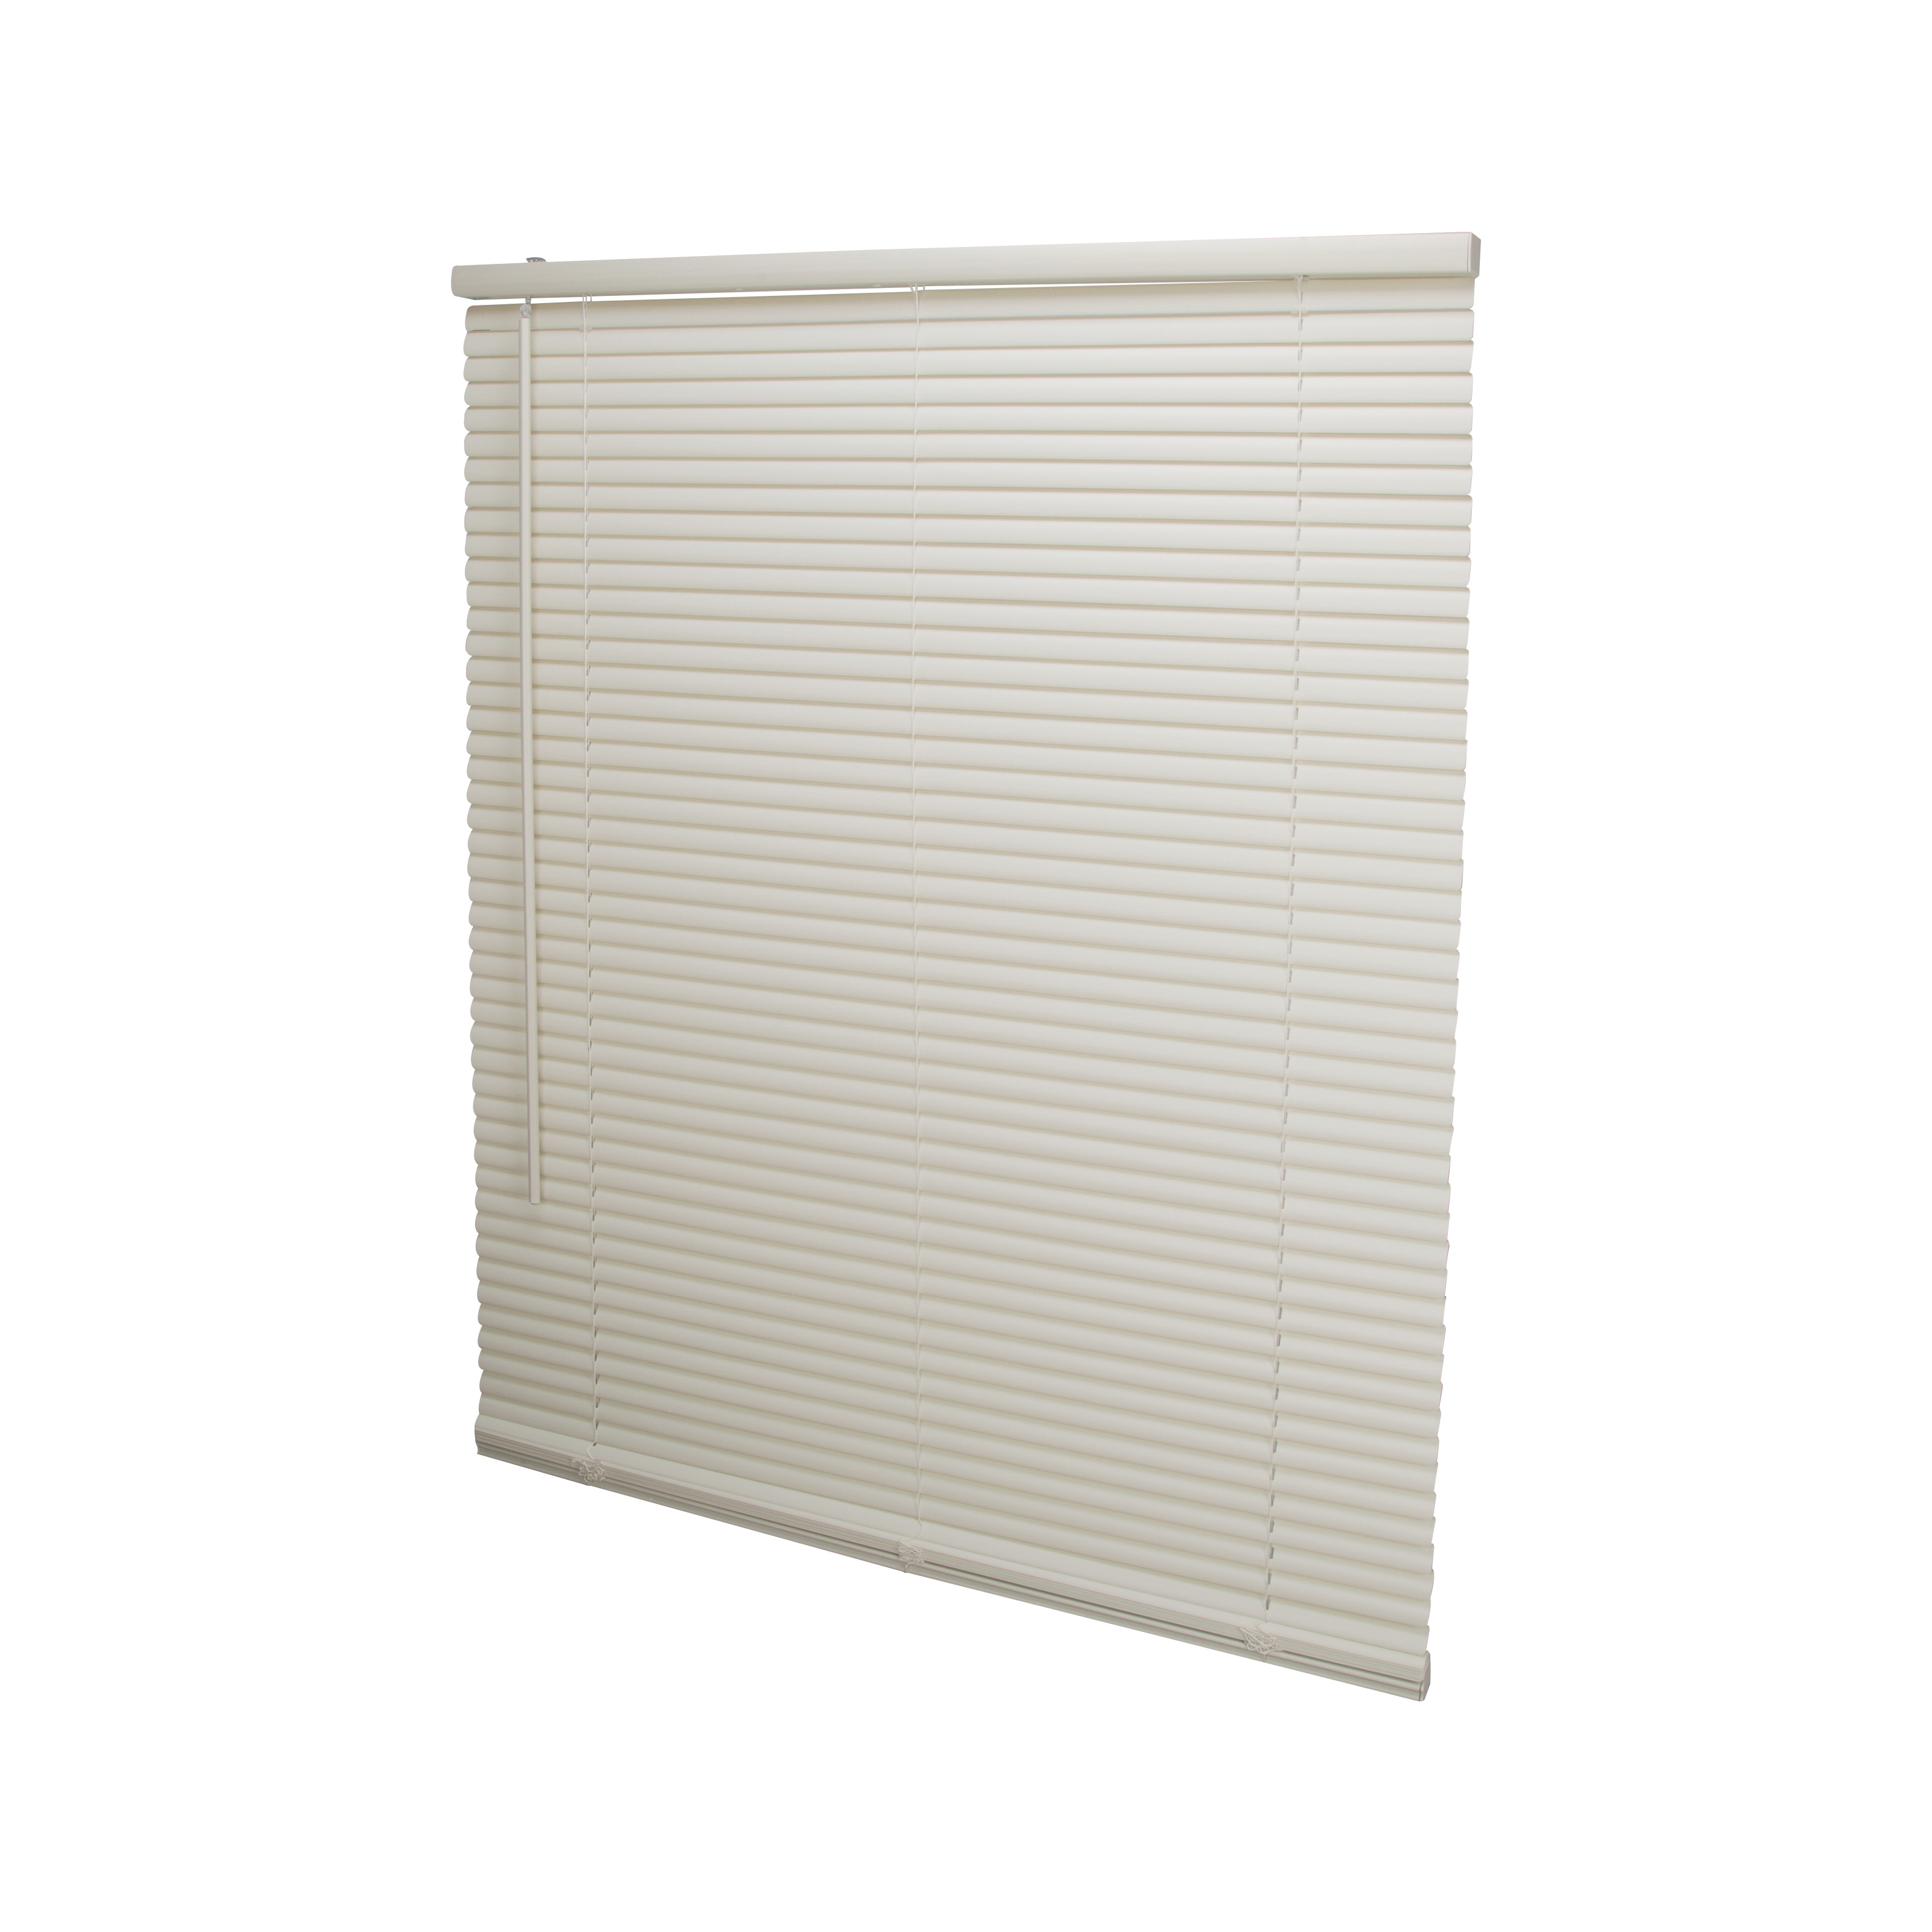 Picture of Simple Spaces PVCMB-12AA Cordless Mini Blind, 64 in L, 39 in W, Vinyl, Alabaster